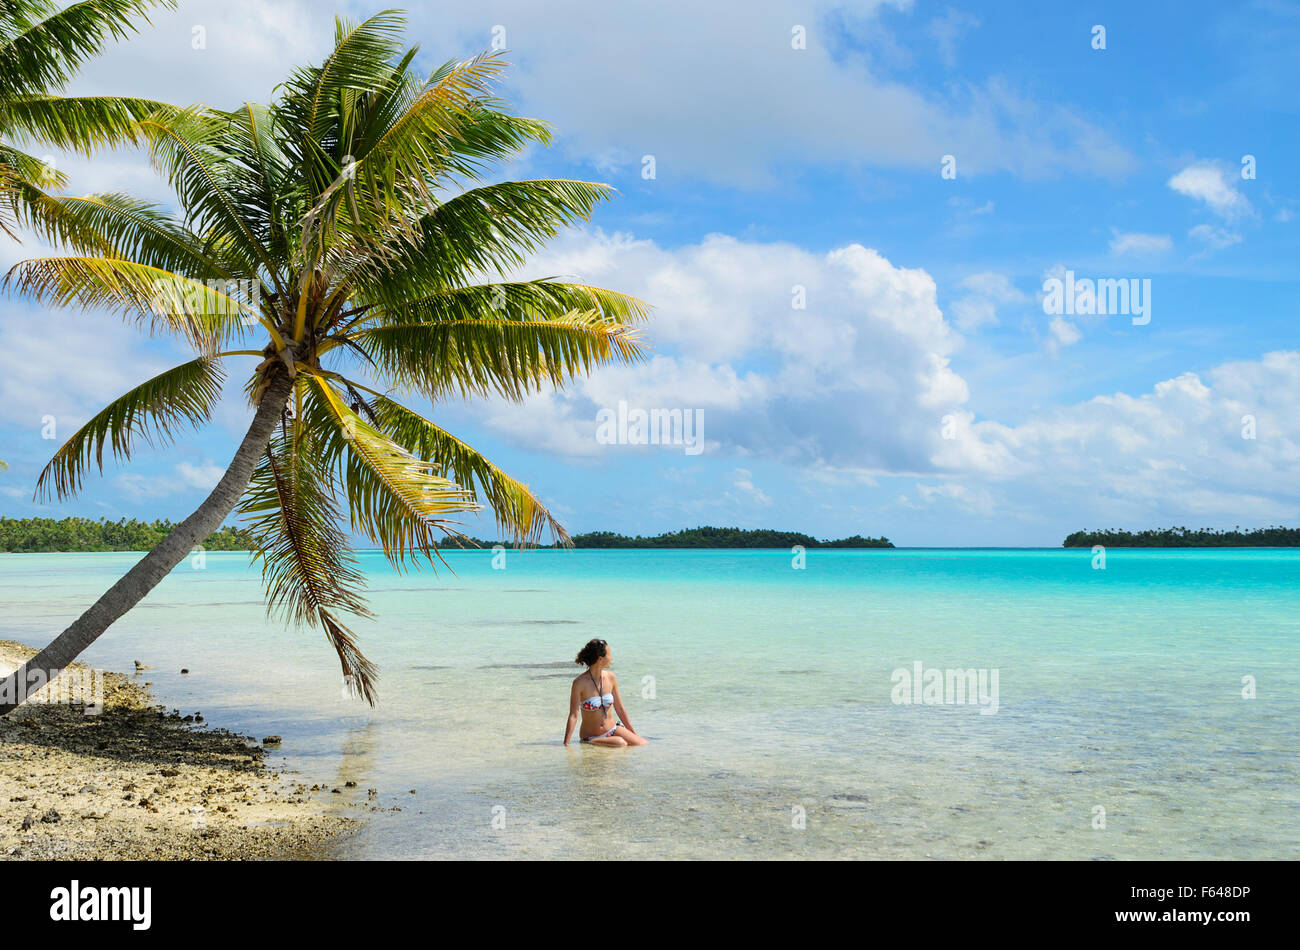 Female tourist bathing in the shallow water of the sea under a palm tree on a beach on a desert island in the lagoon - Stock Image